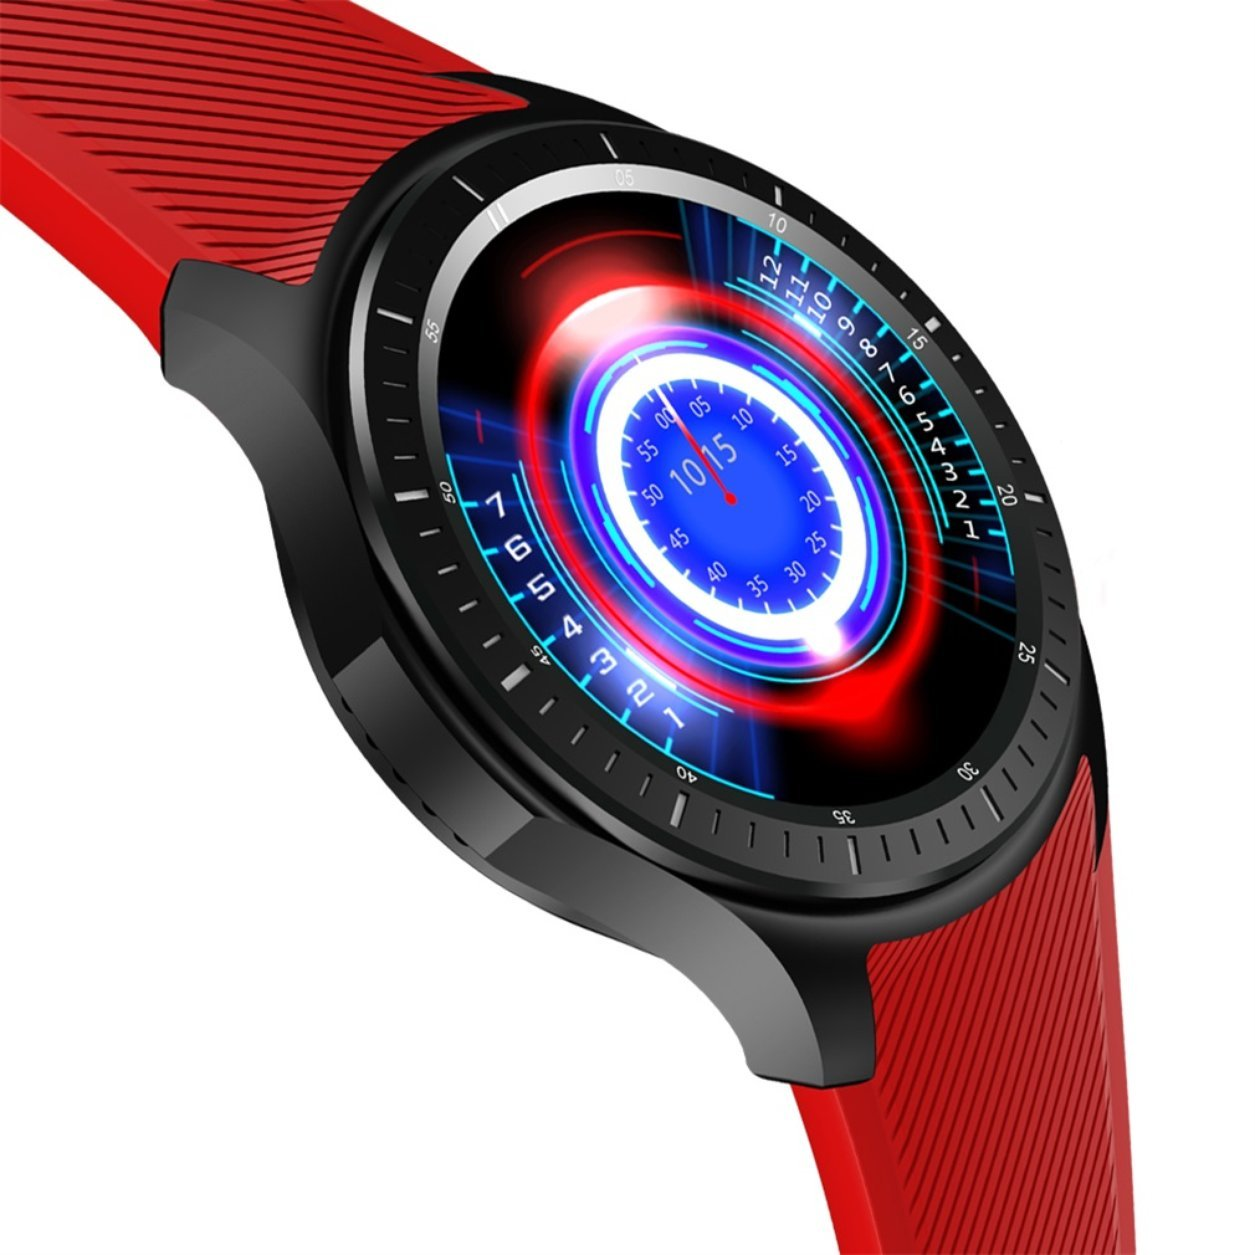 DM368 Quad Core 1.39 Inch AMOLED Screen Display Bluetooth 4.0 Smart Watch(Color:red) B07KP7DNWL